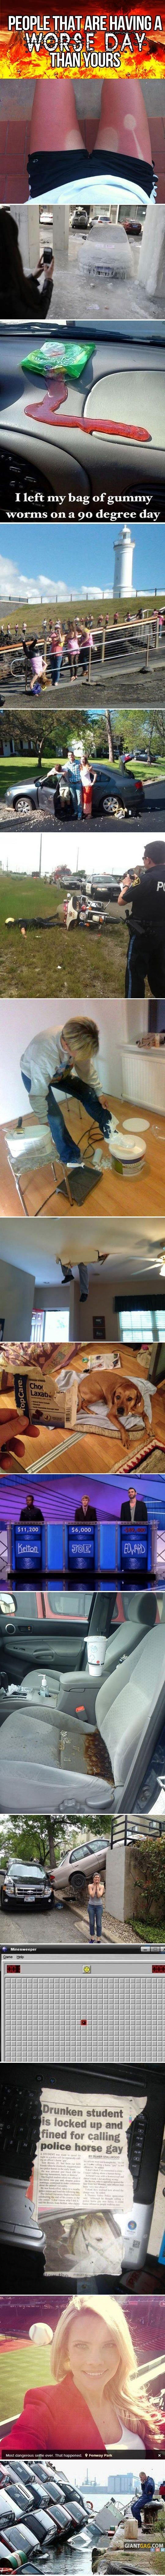 People That Are Having Worse Day Than Yours (Compilation), Click the link to view today's funniest pictures! | re-pinned by http://www.wfpblogs.com/author/rachelwfp/